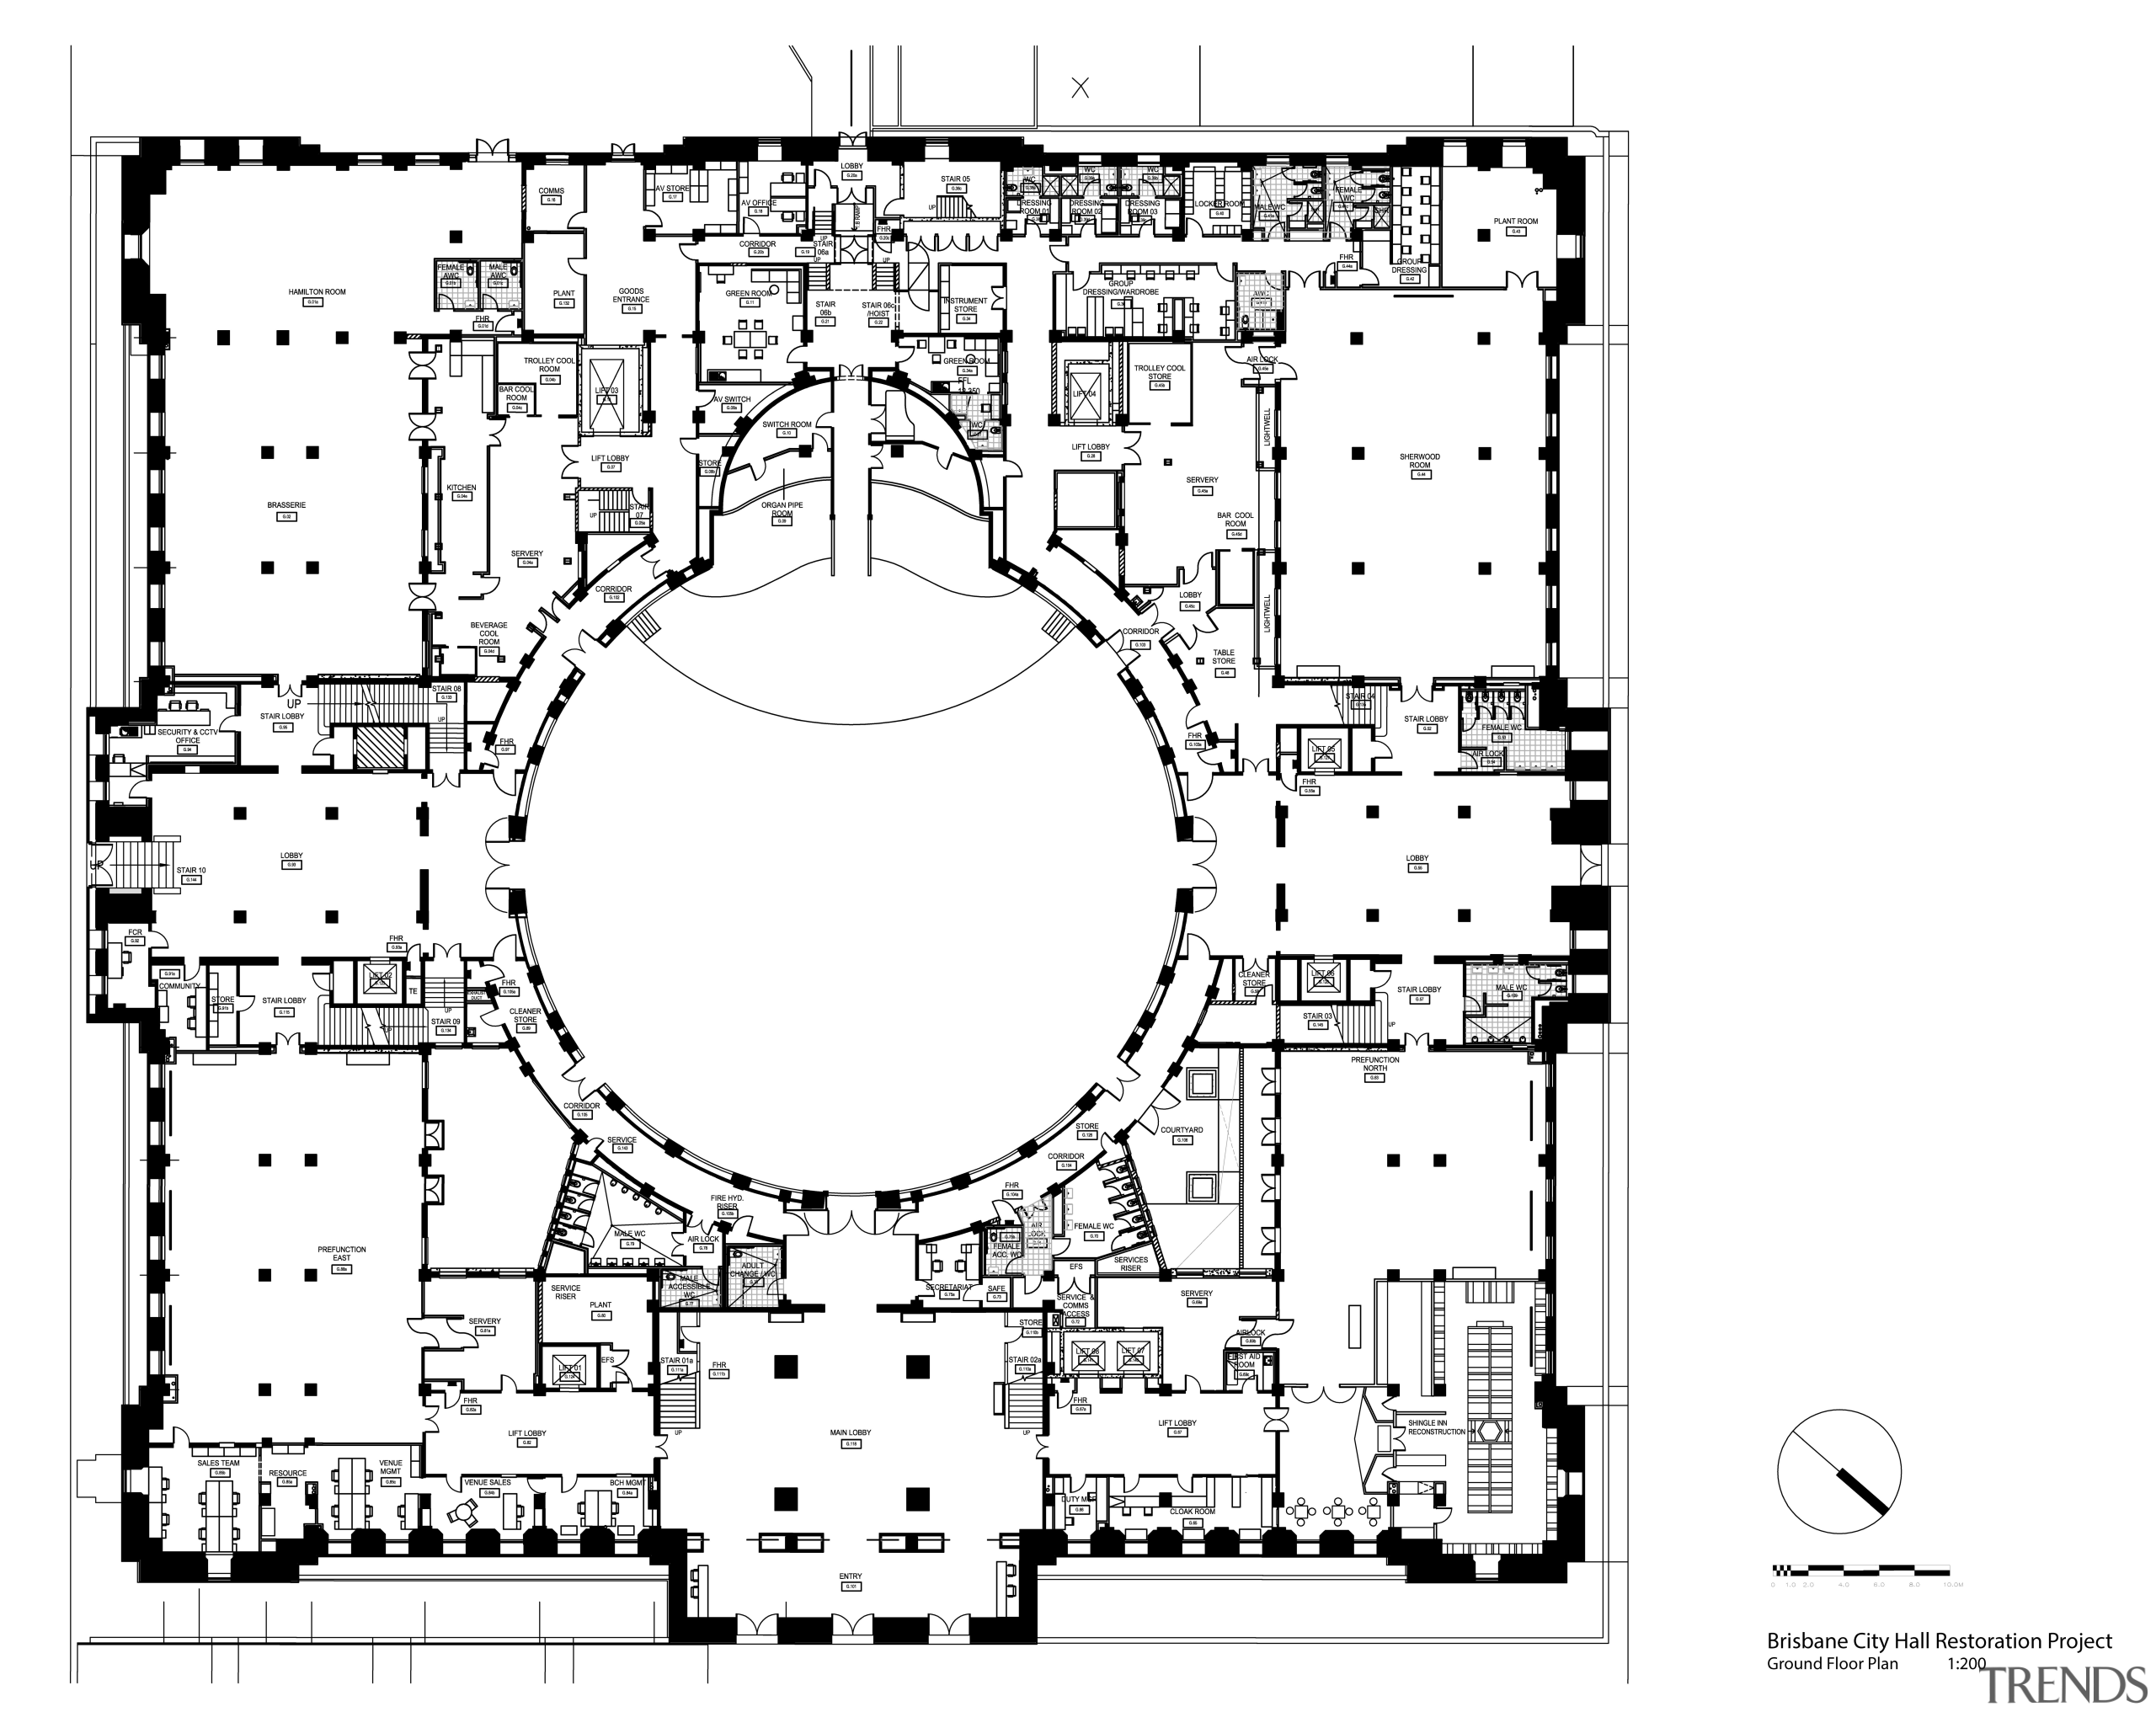 Code-compliant heritage restoration of Brisbane City Hall area, black and white, design, diagram, drawing, floor plan, font, line, monochrome, plan, text, white